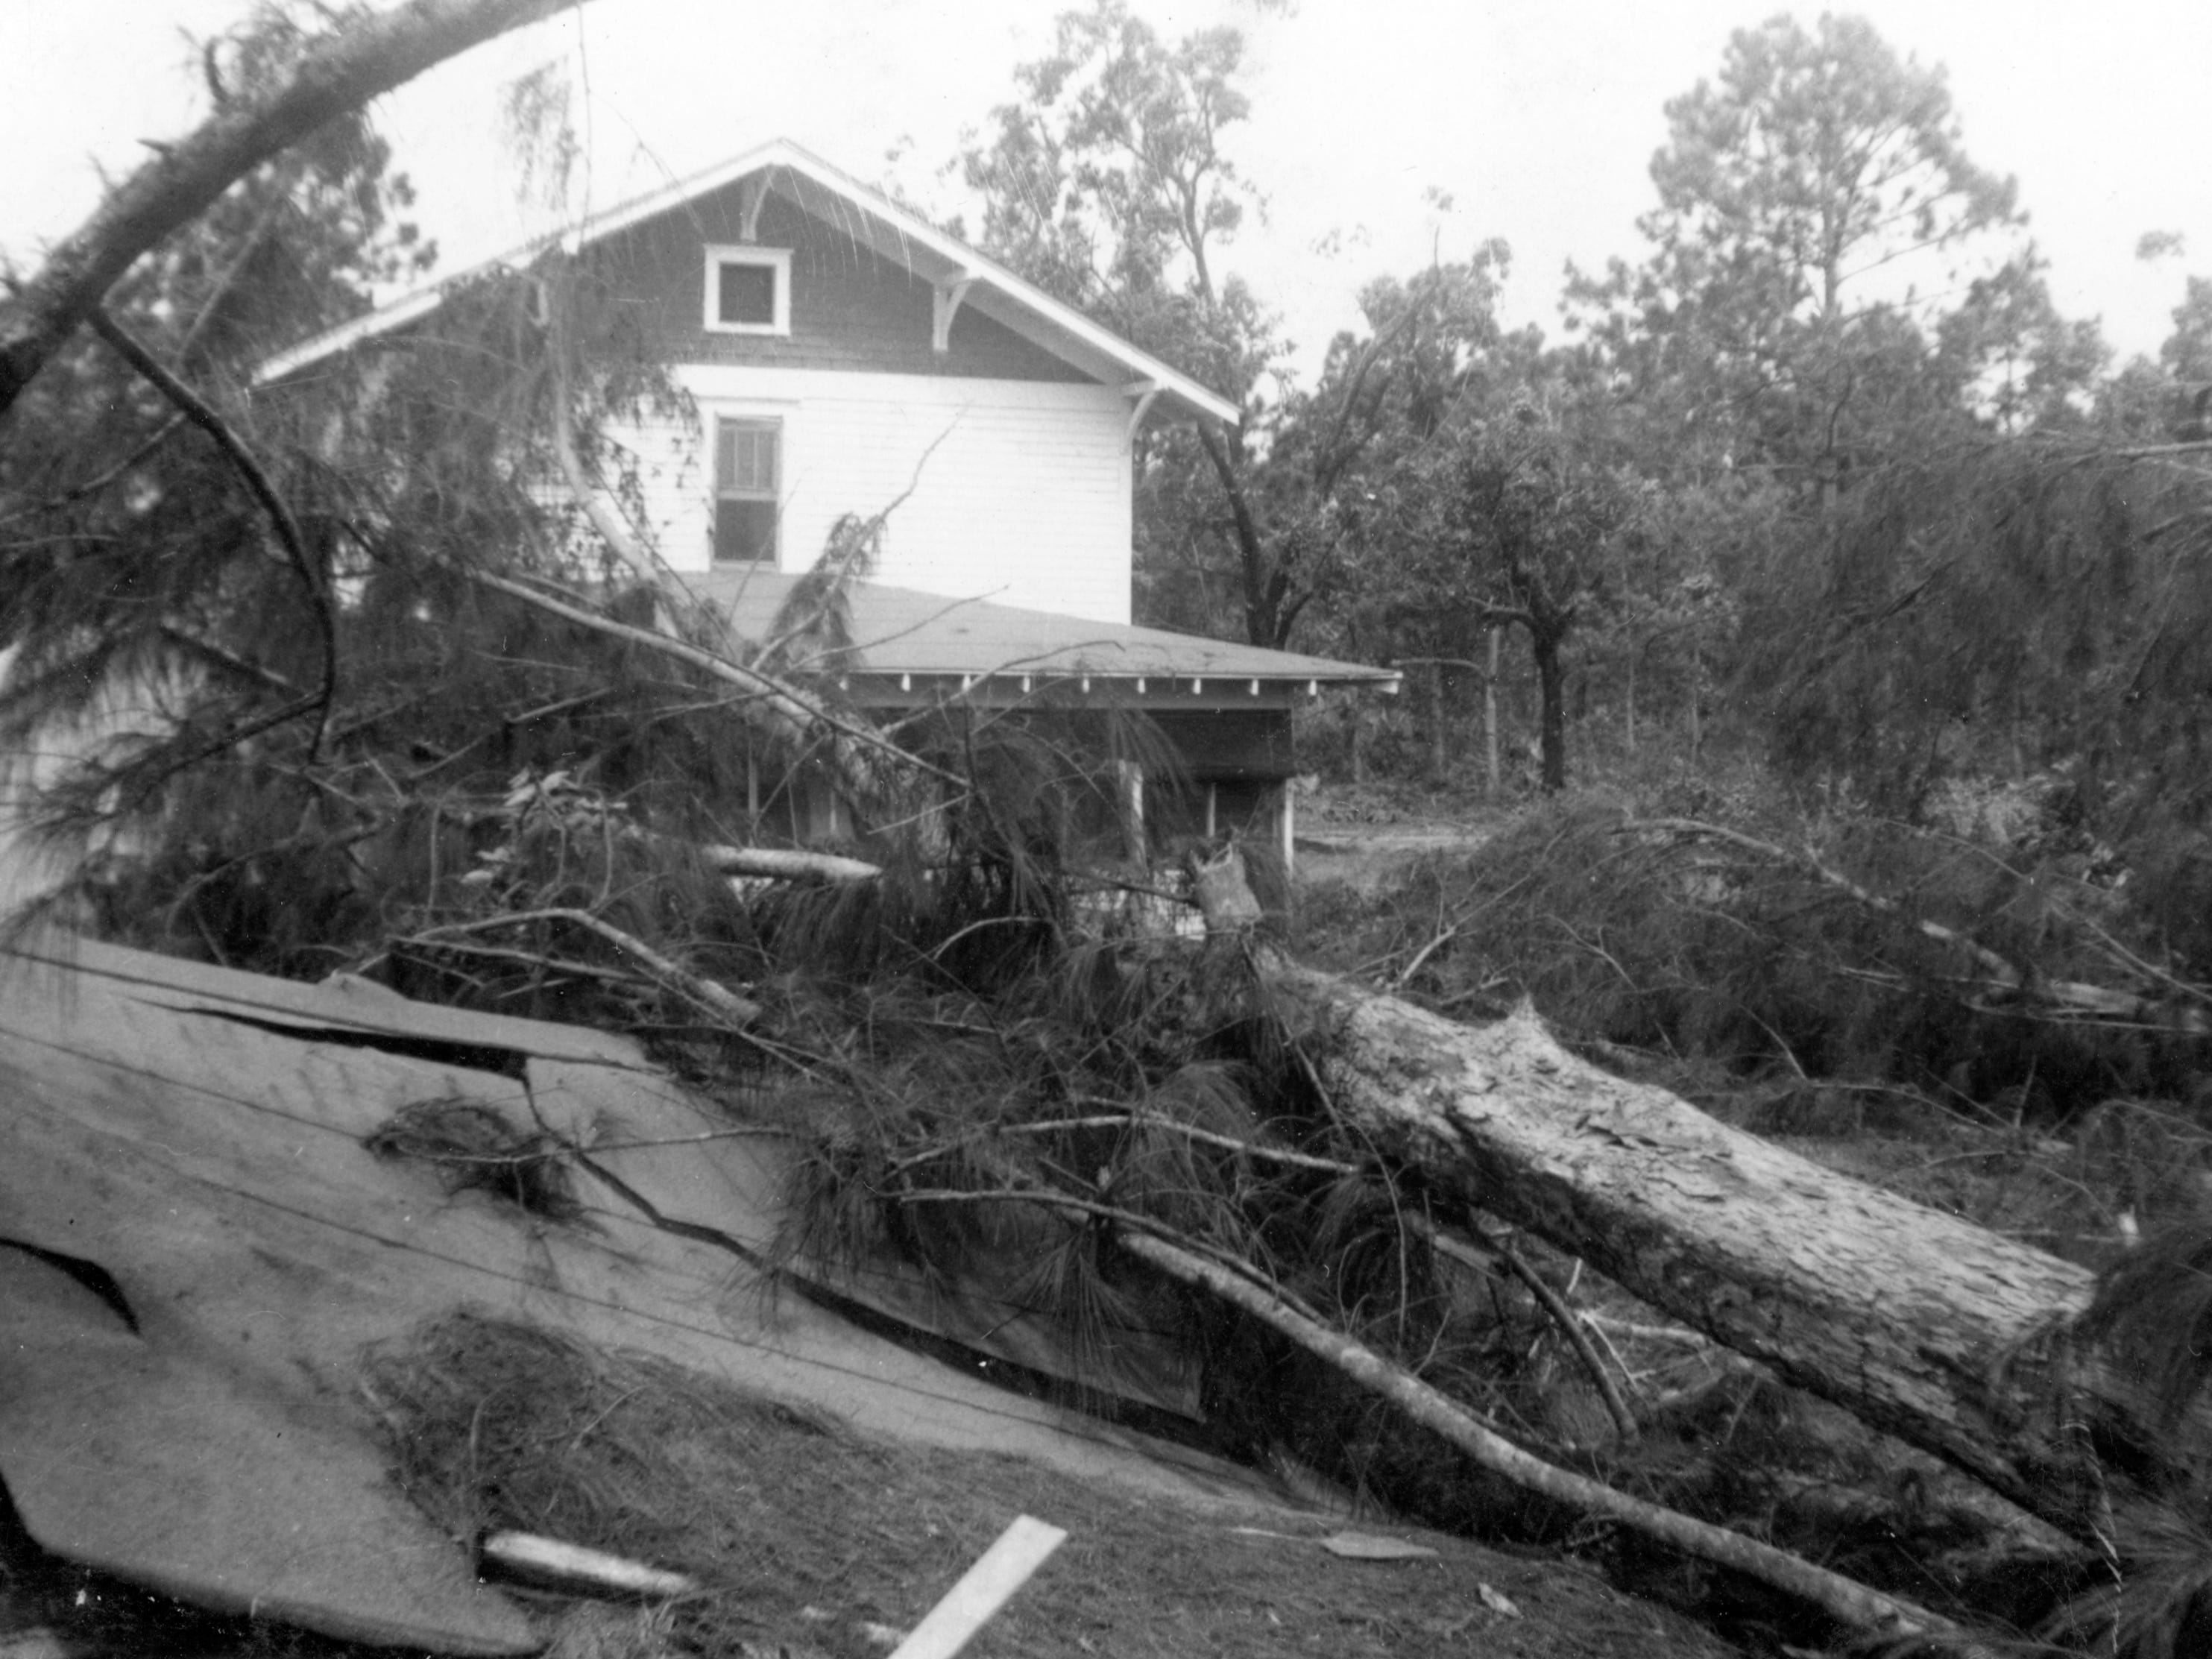 Hurricane damage is seen in 1949 to the Wodtke family home on 26th Avenue in Vero Beach. The shed in the bottom of the picture was where the male children slept.